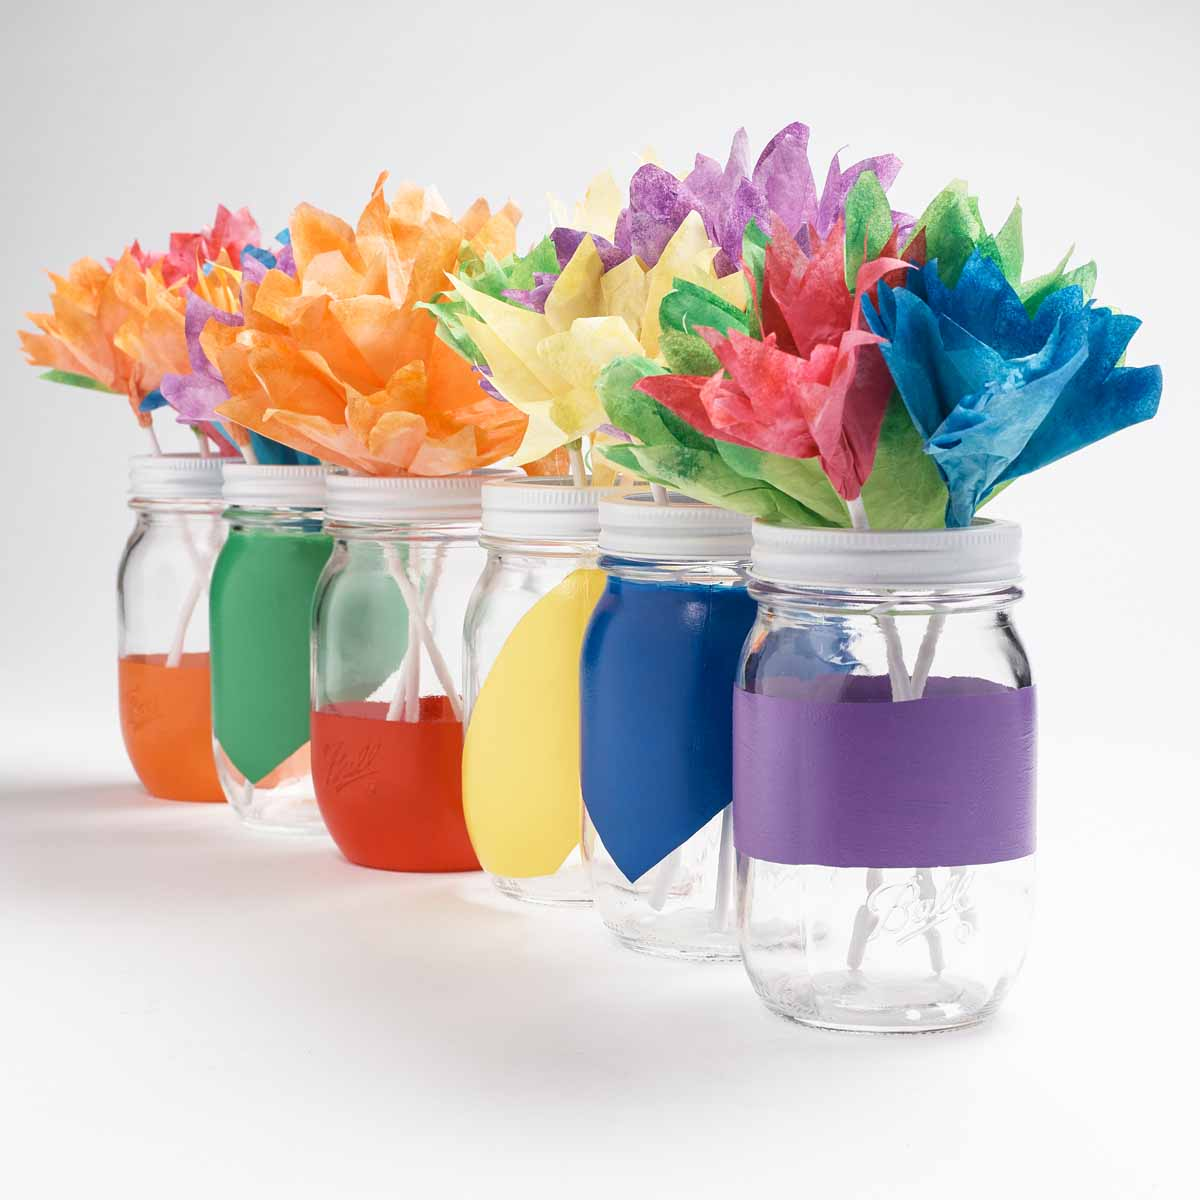 Painted Mason Jars & Coffee Filter Flower Bouquets -- Rainy Day Kids Crafts